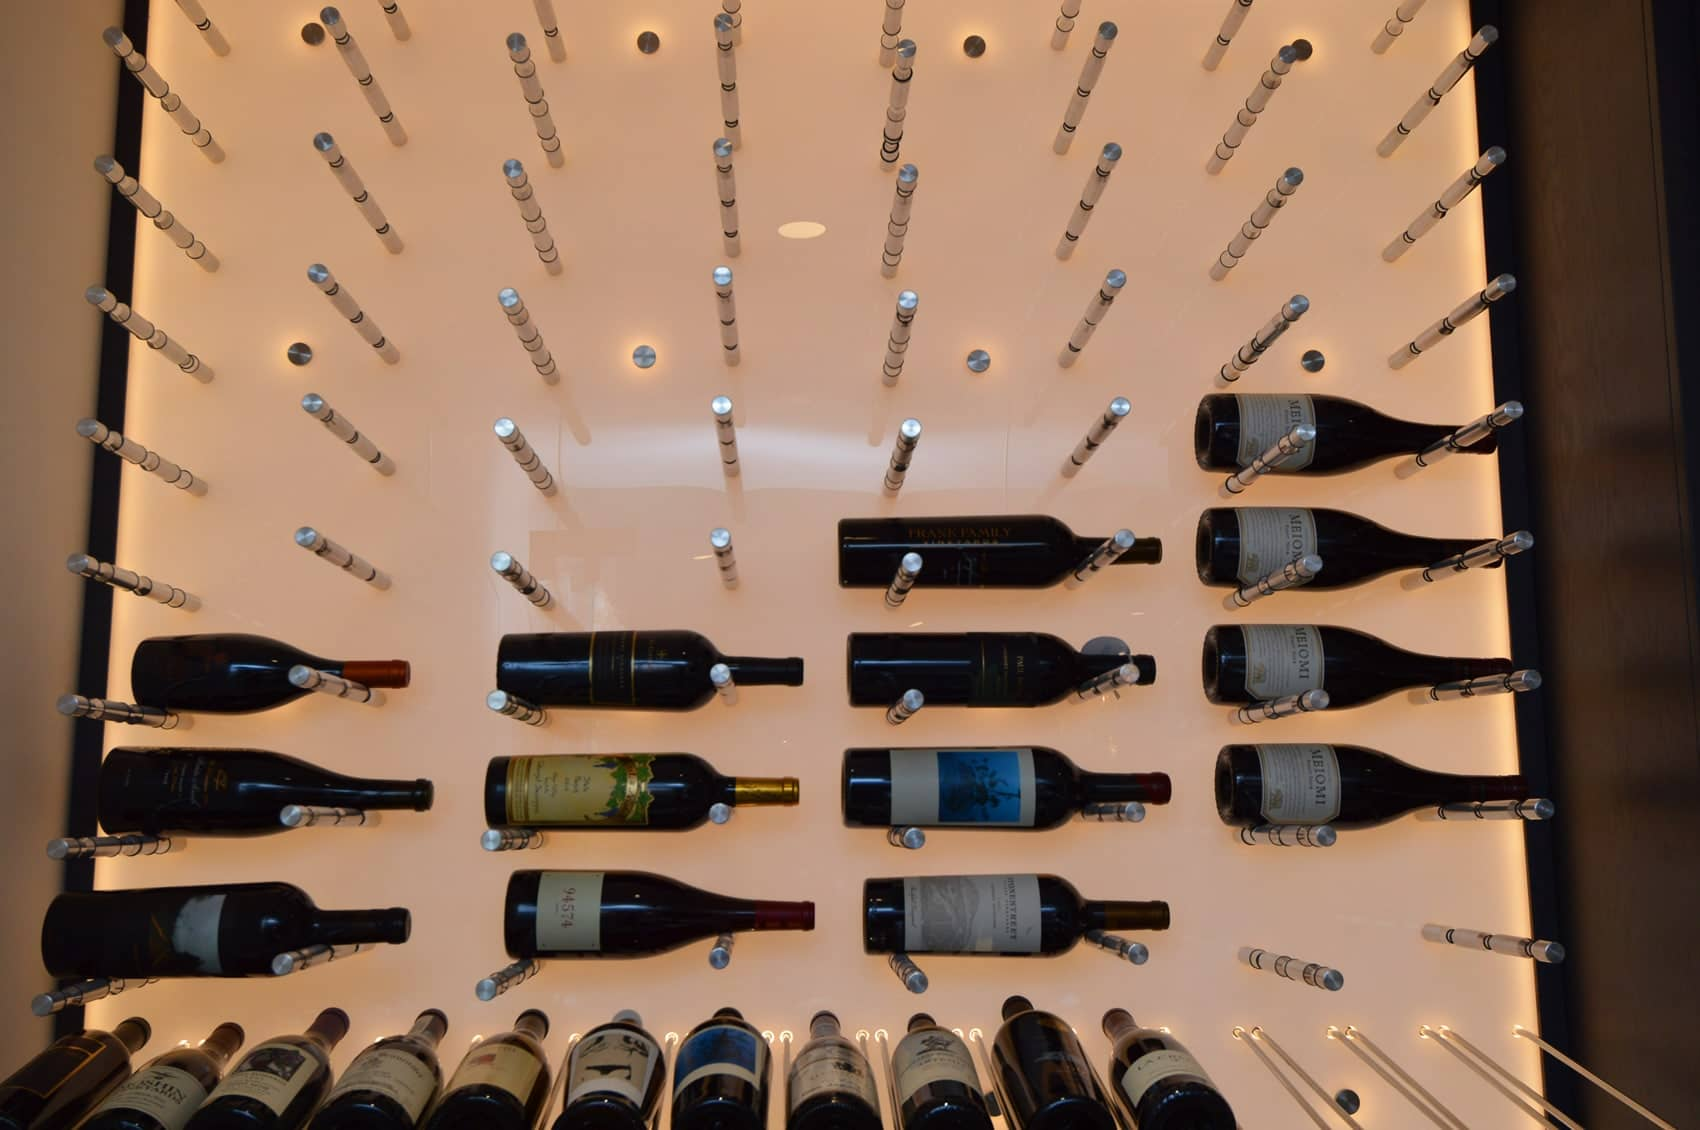 Adding a Reveal rack at the bottom of the wine pegs maximizes the space usage for the modern wine room.